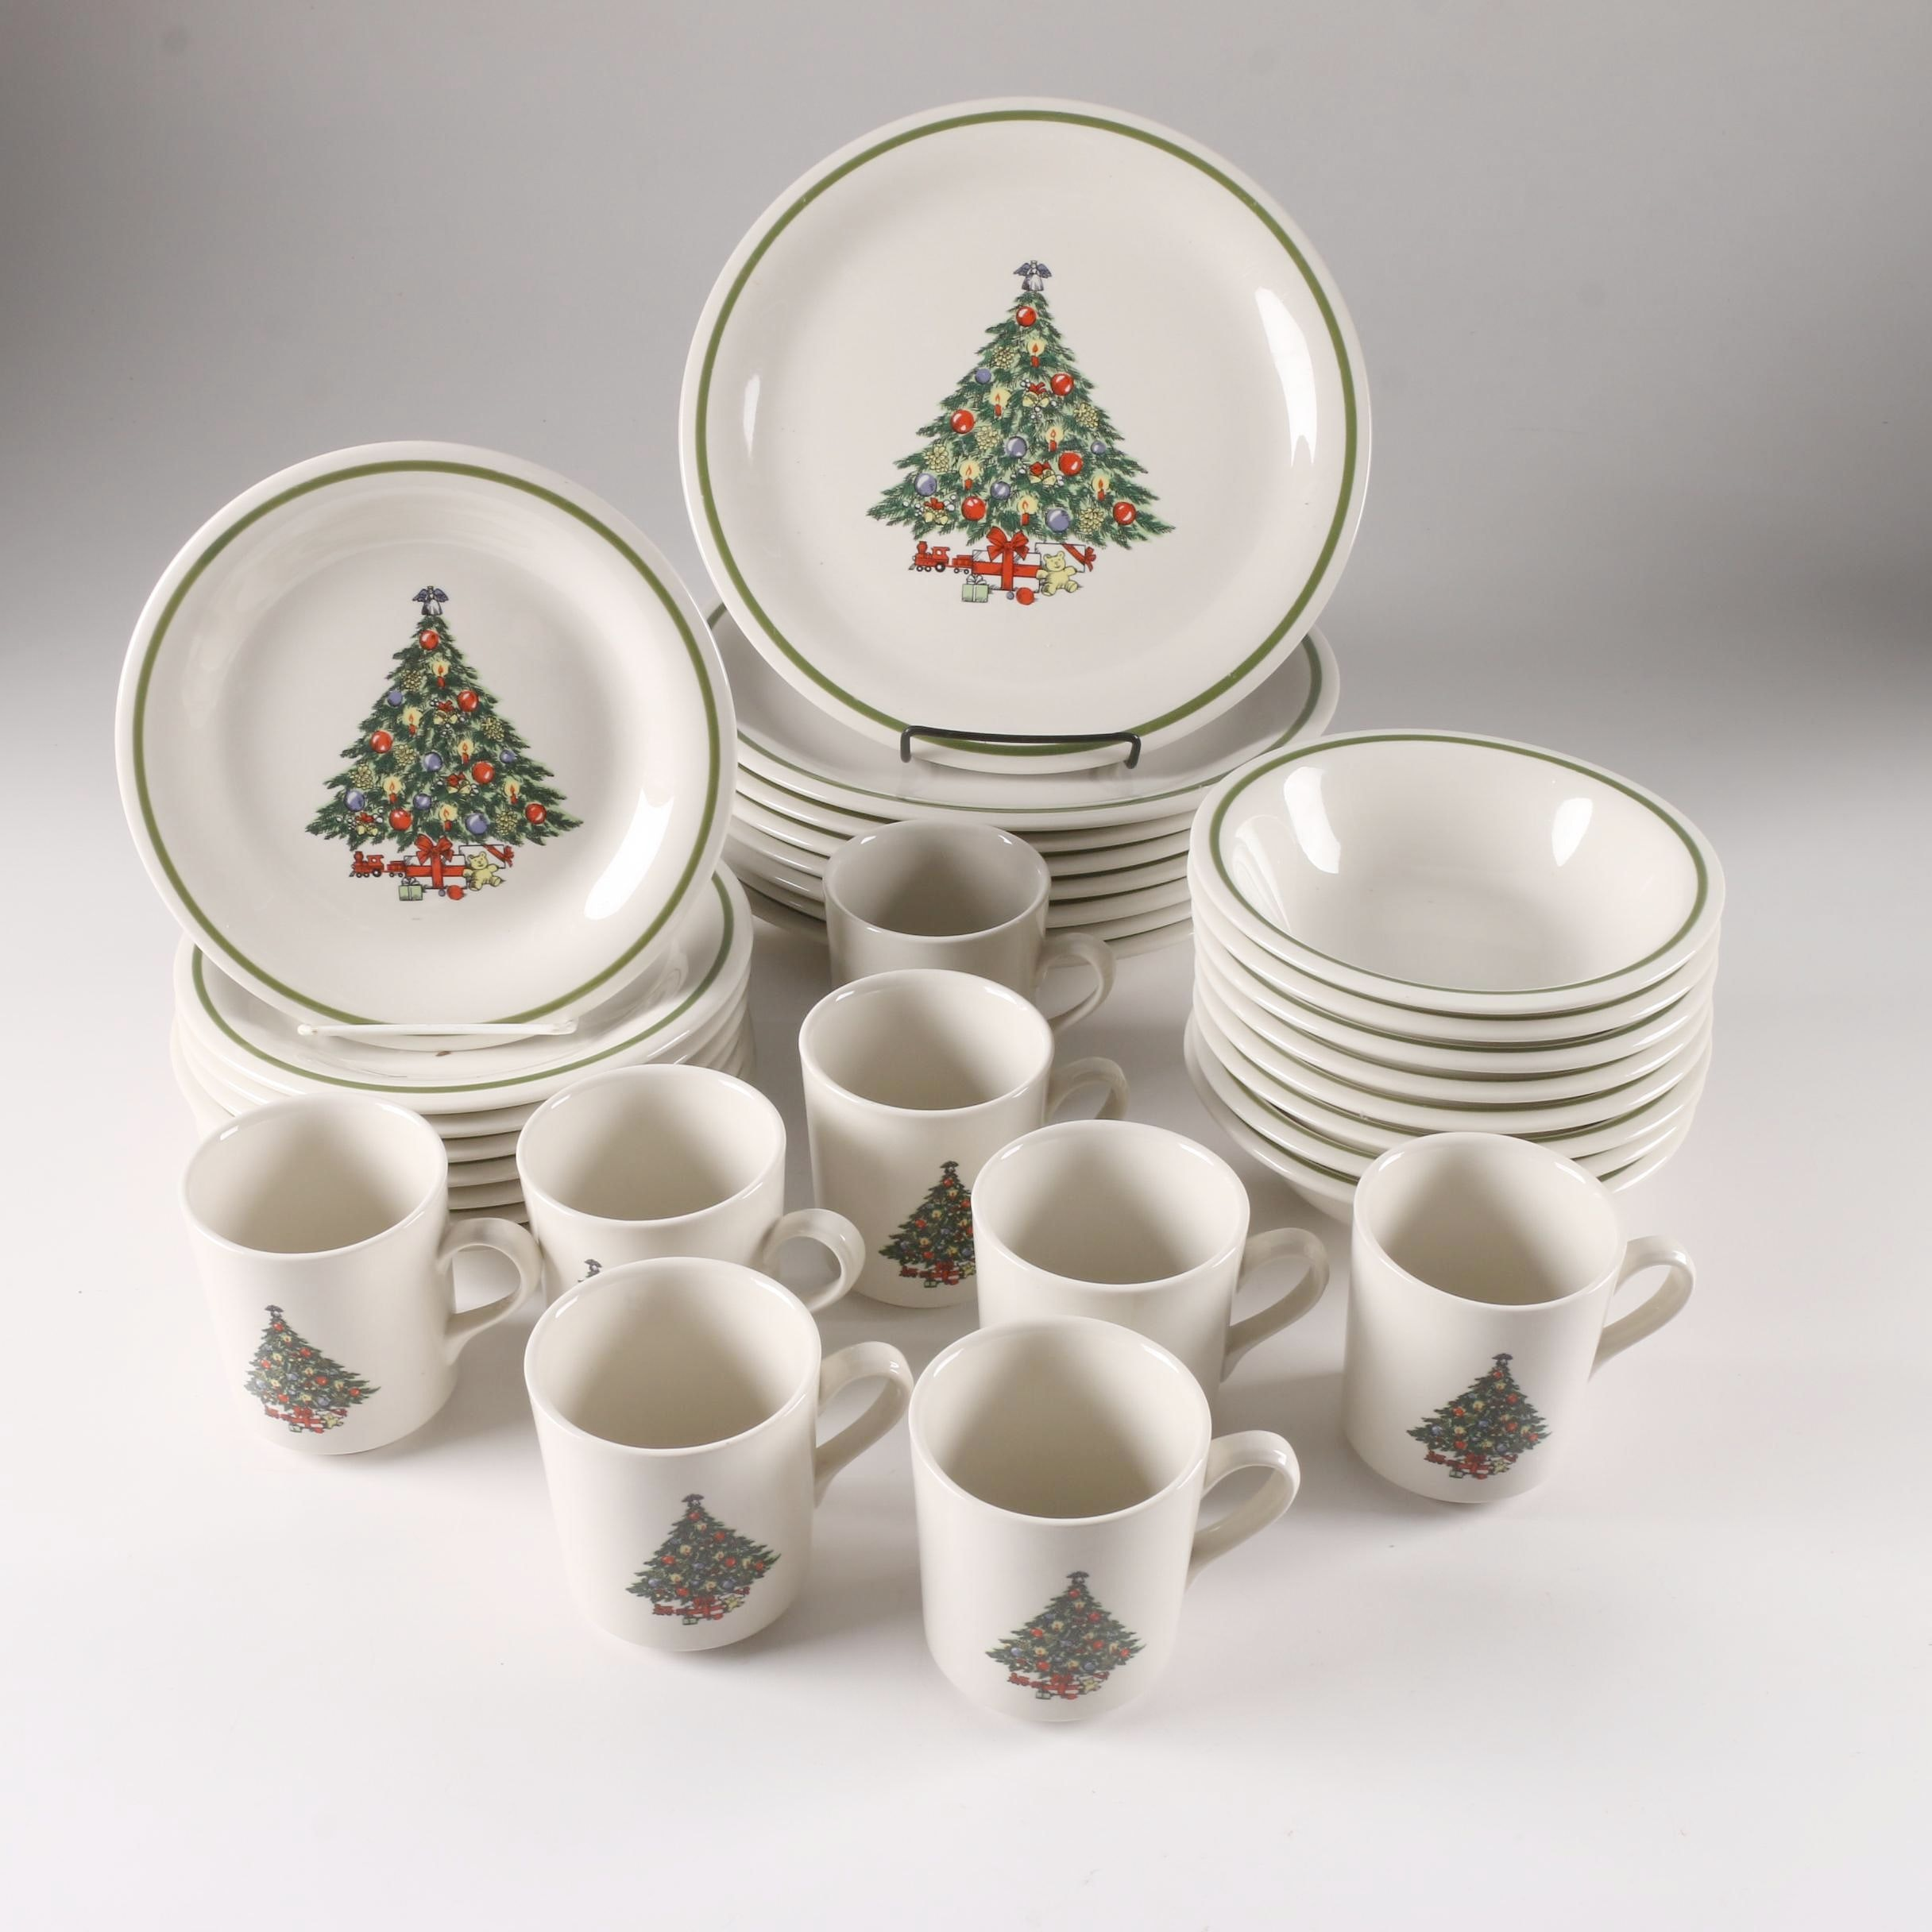 Mount Clemens Pottery Christmas Themed Dinnerware ... & Mount Clemens Pottery Christmas Themed Dinnerware : EBTH